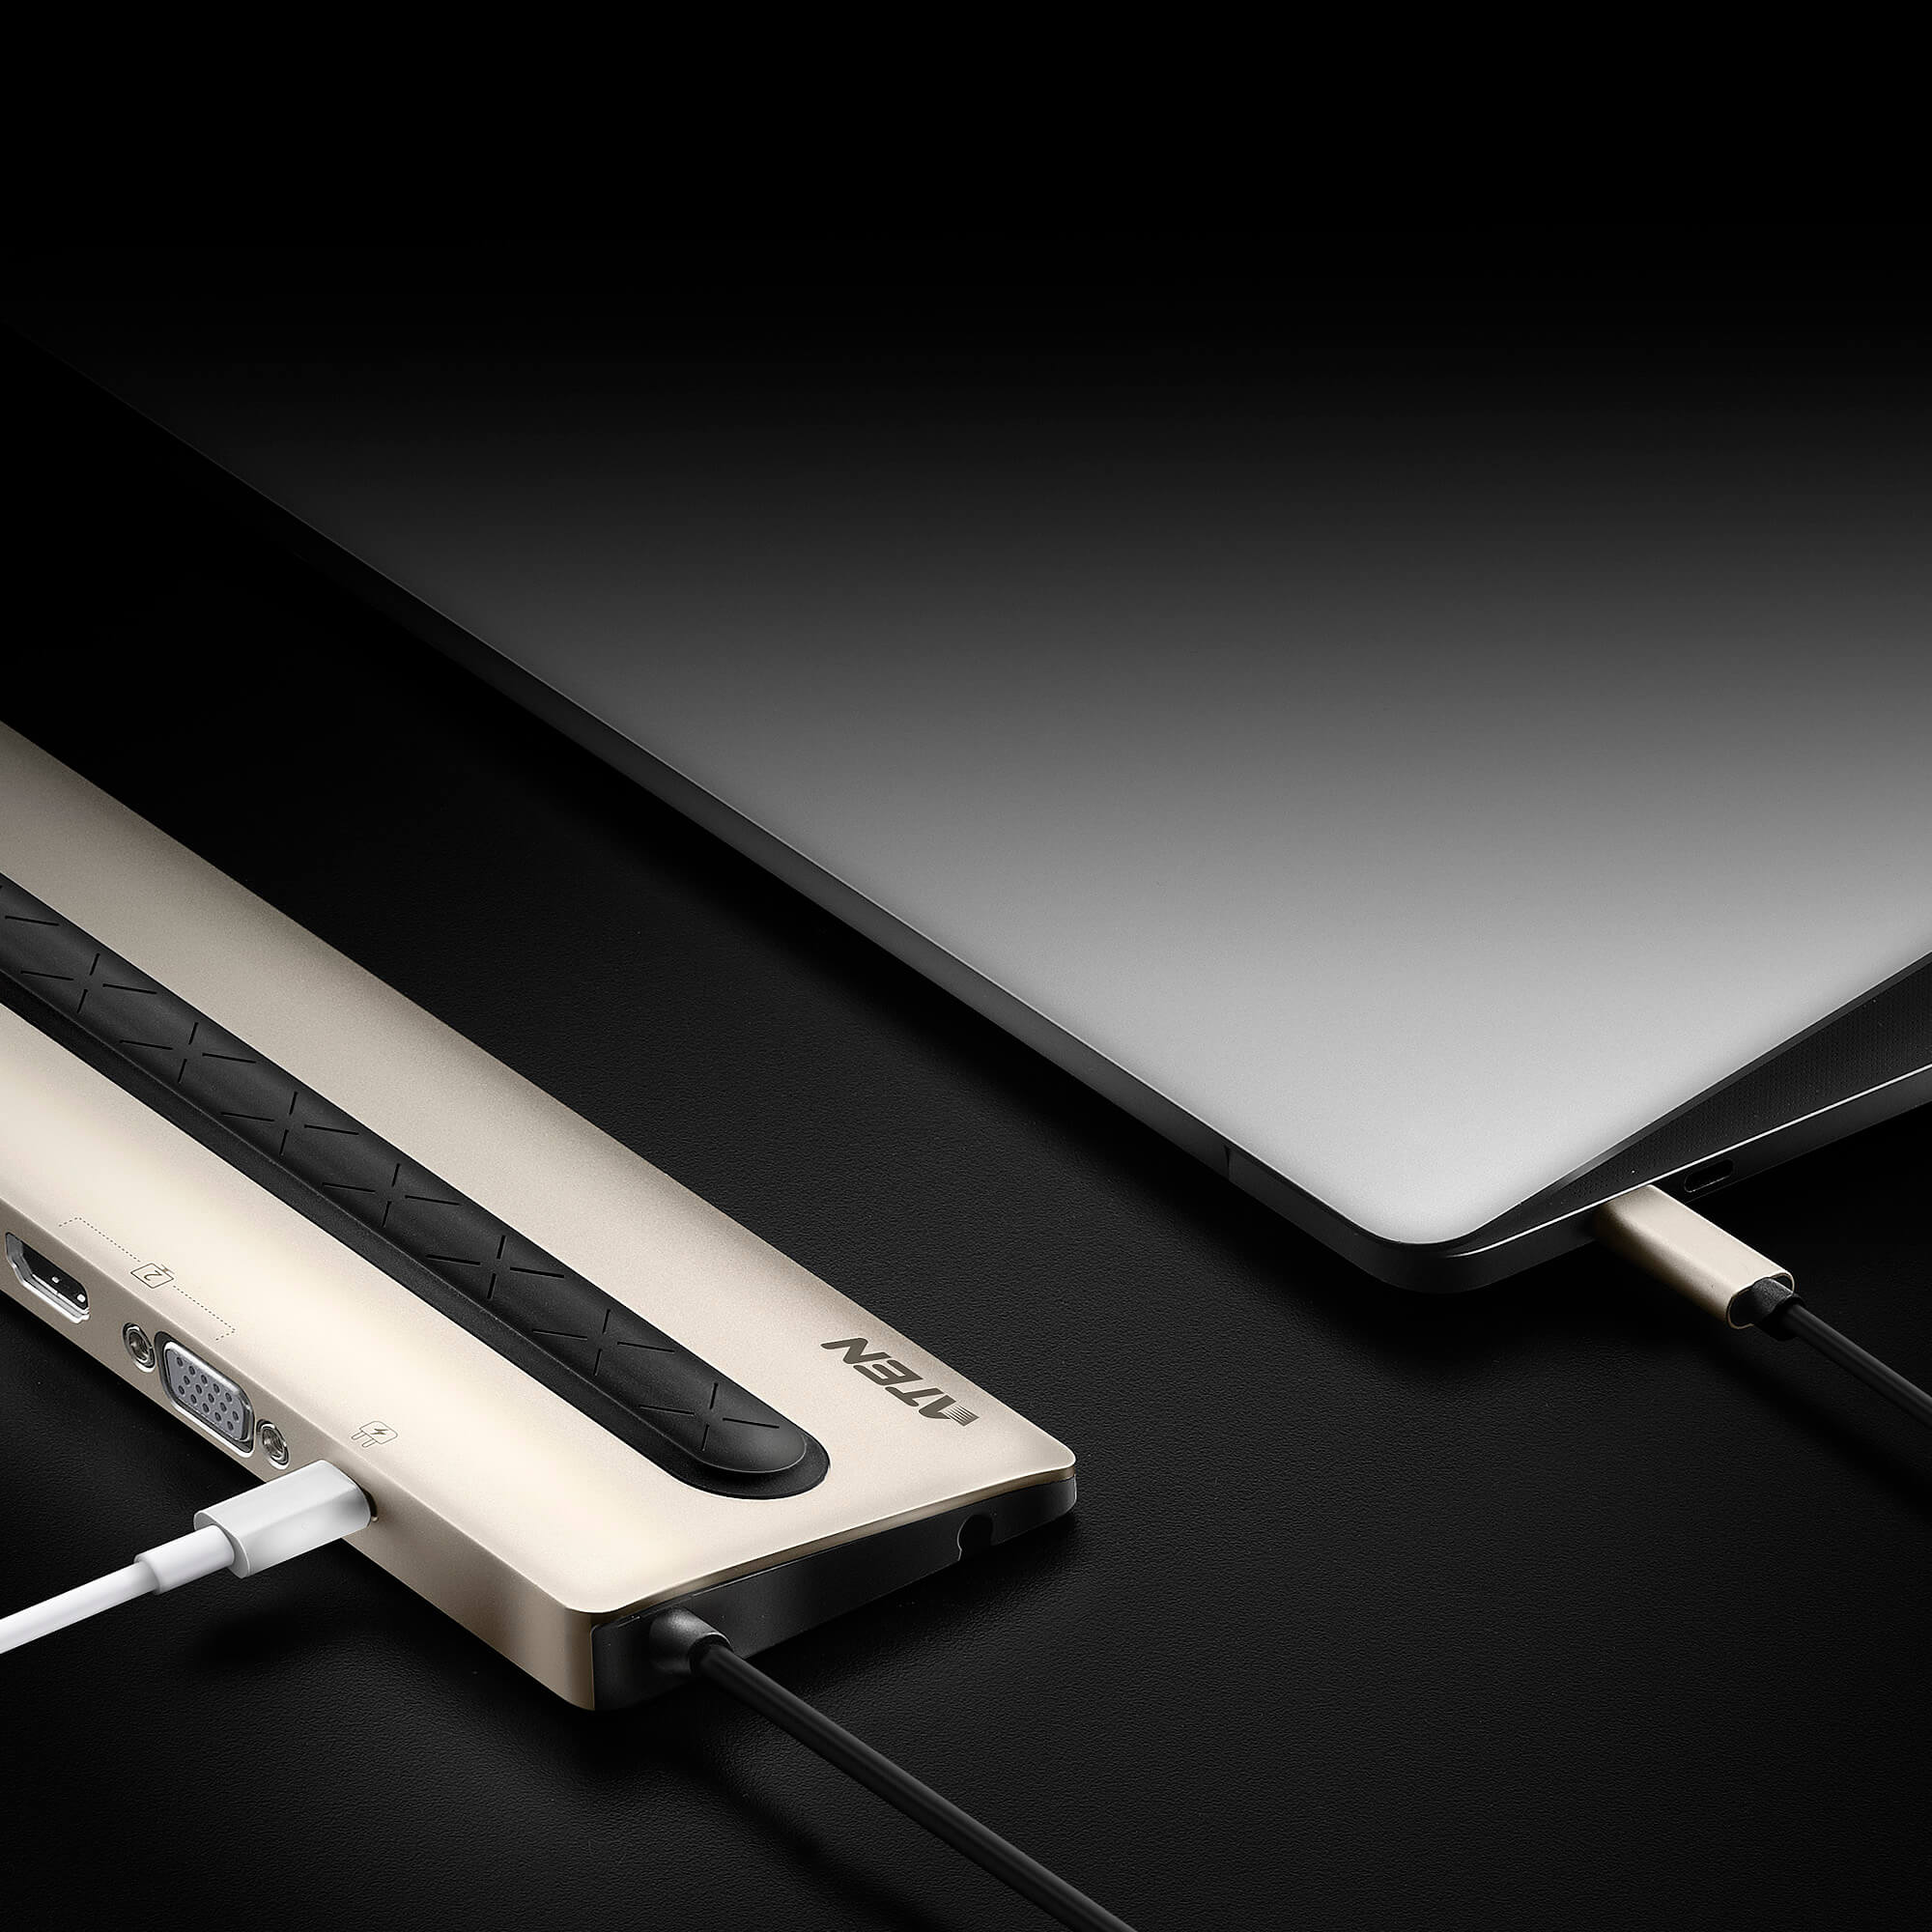 Wieloportowa stacja dokująca USB-C z Power Pass-Through-8